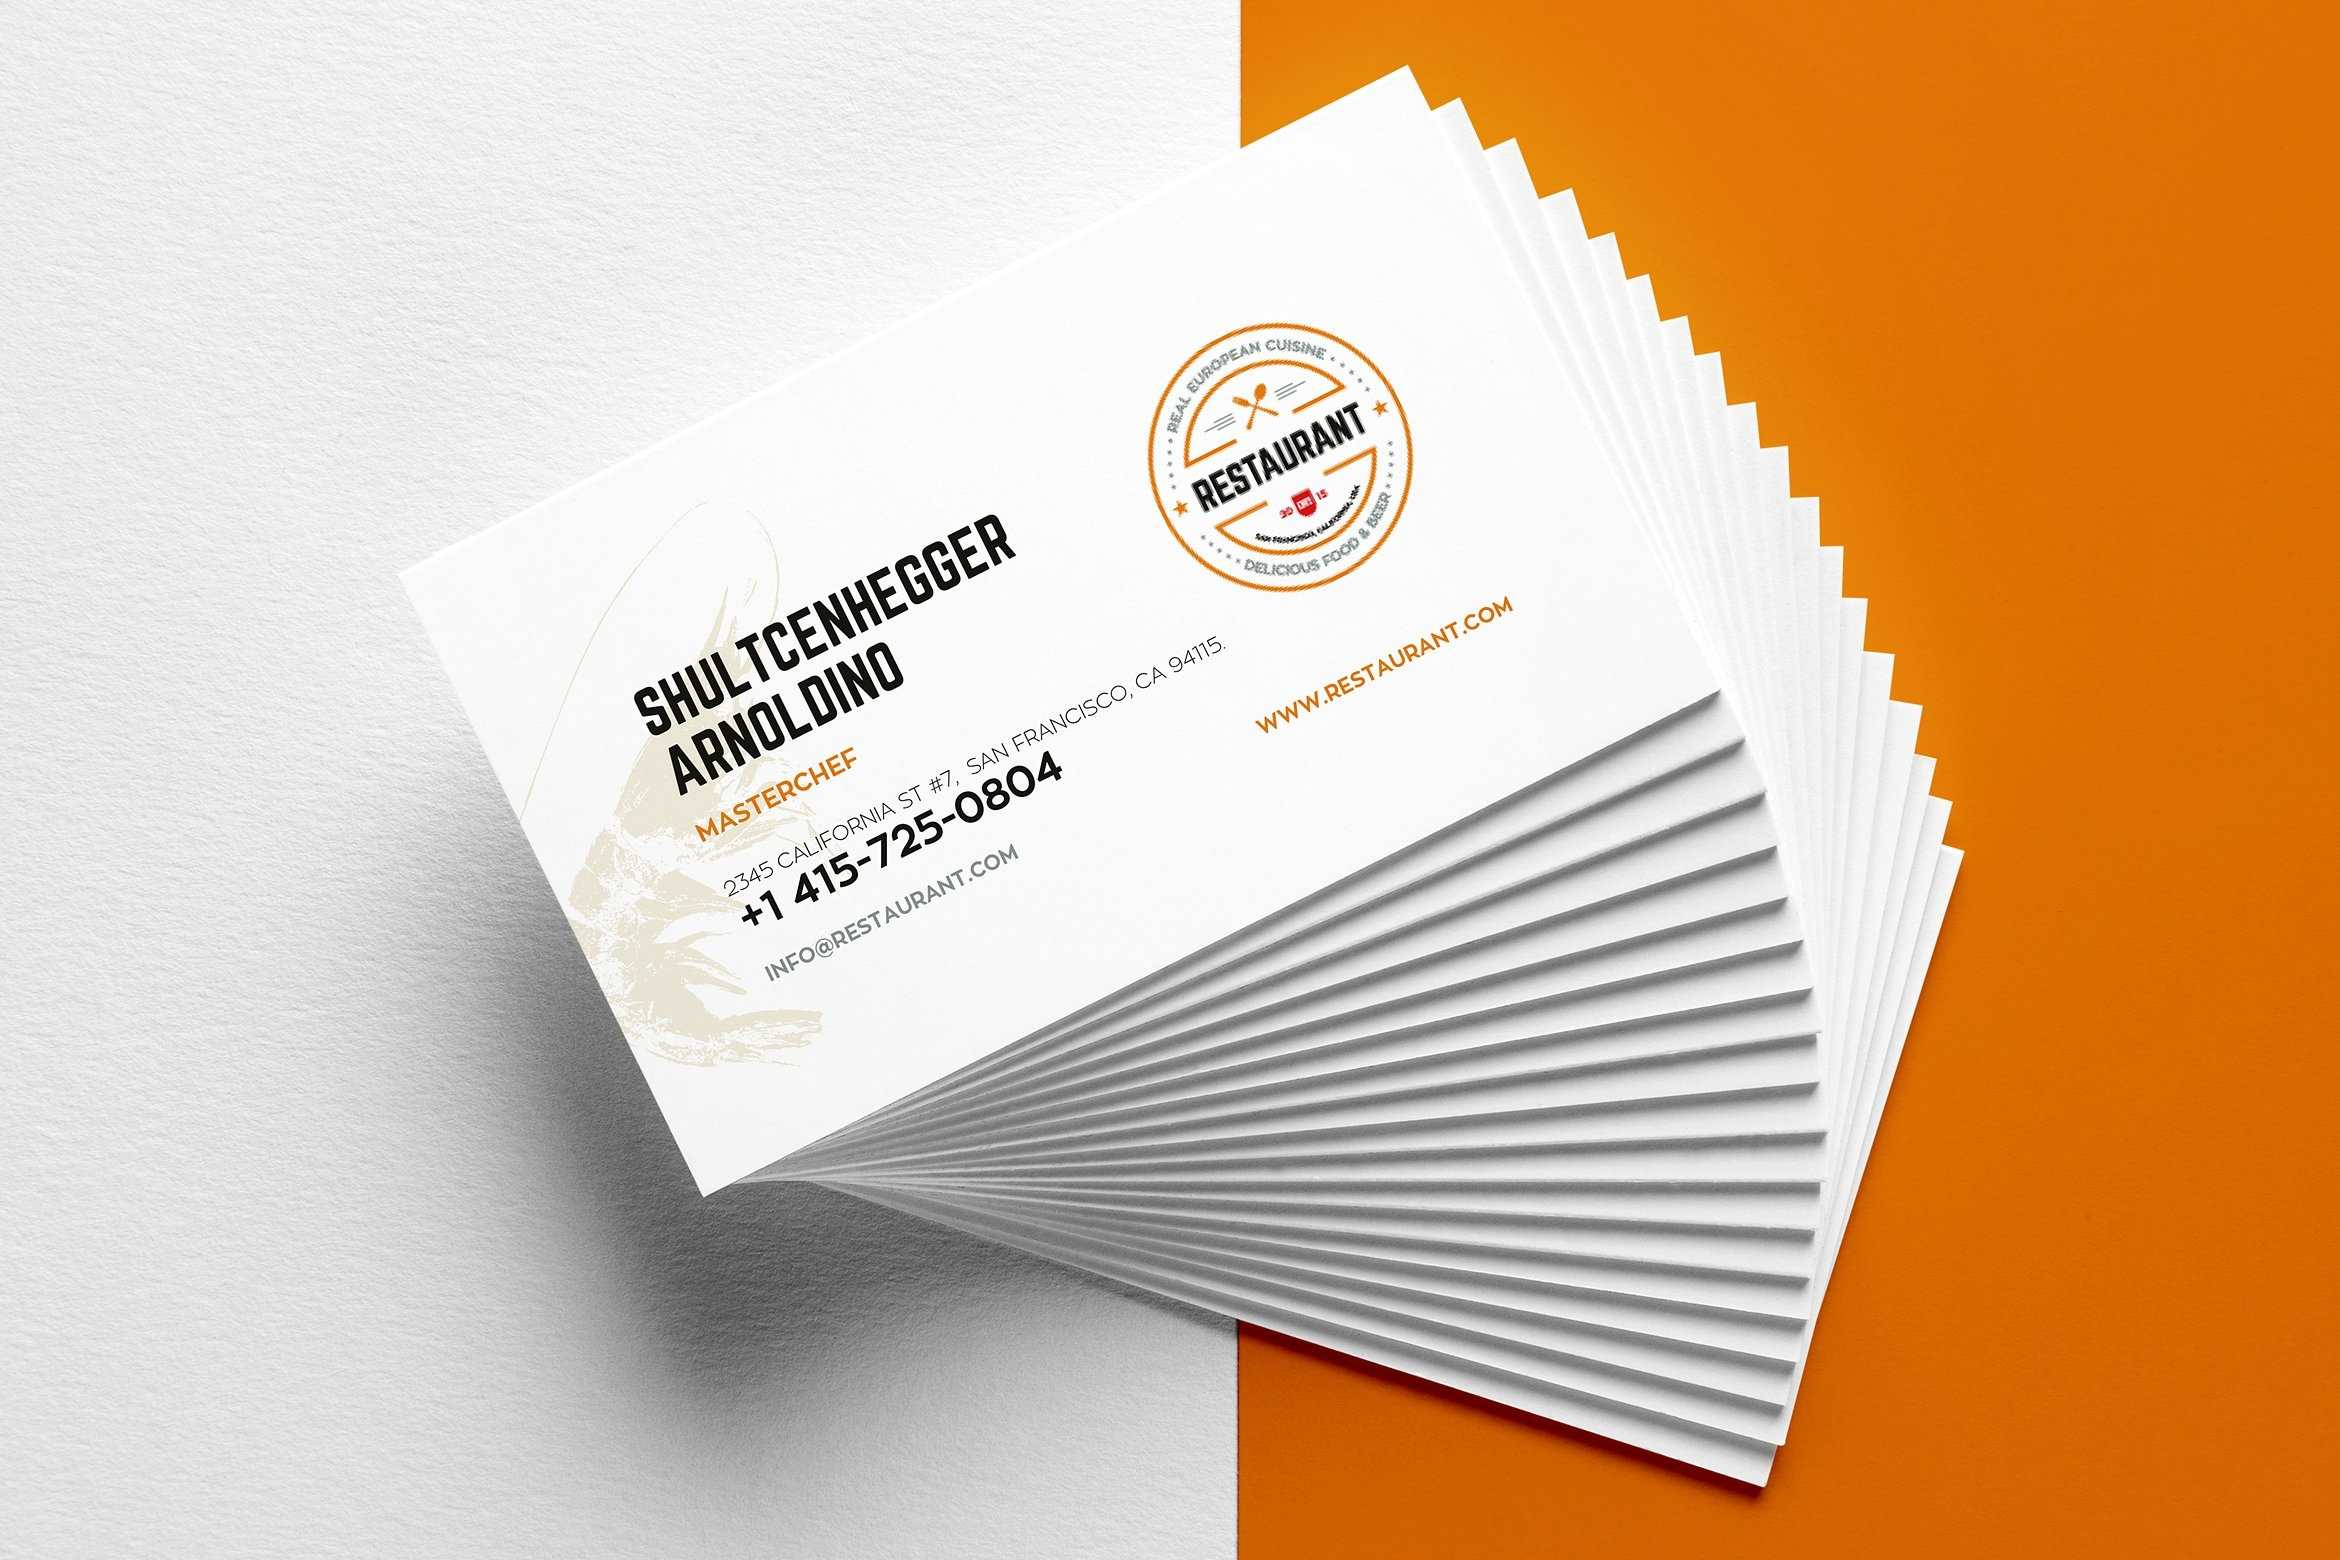 001 Microsoft Office Business Card Template Ideas Templates inside Microsoft Templates For Business Cards